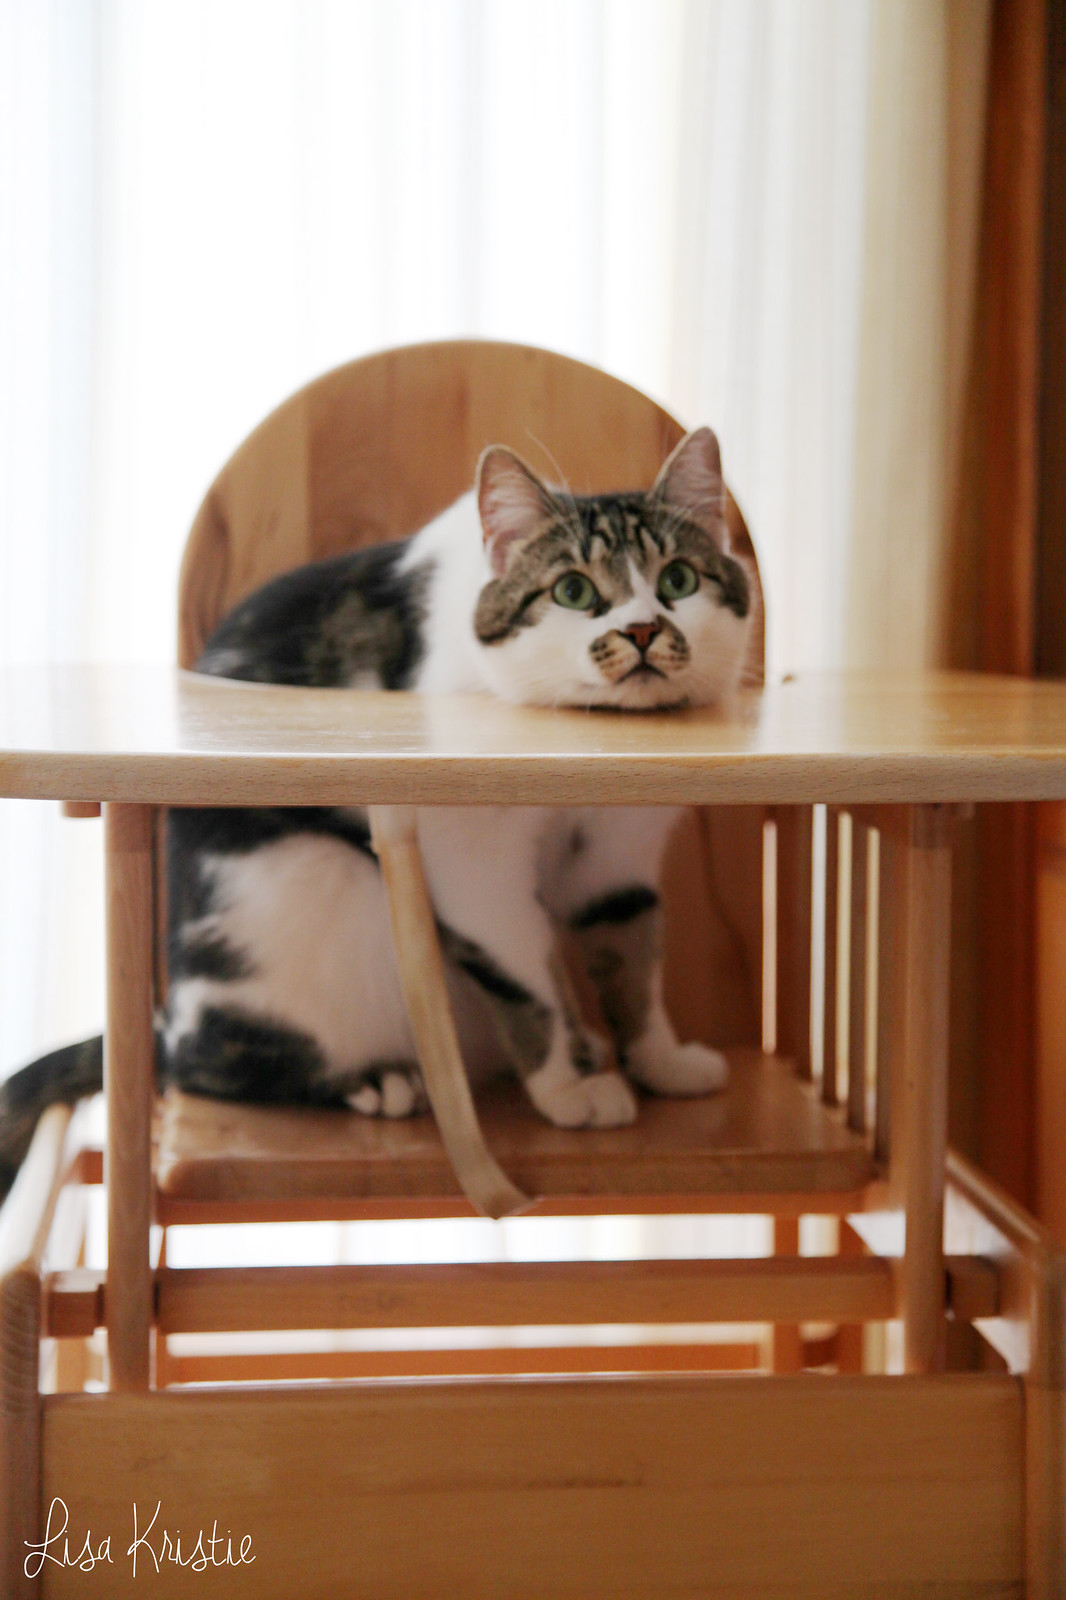 cat baby high chair cute funny pet adorable><br /> </center><br /> I&#8217;m fairly sure I can feel the baby move now. It&#8217;s still quite subtle though, so a slight doubt subsides at this point. I&#8217;ve been able to feel it roll around I think for a few weeks now; which doesn&#8217;t feel very pleasant. Yesterday I felt more like bubbles, which is what everyone&#8217;s been describing it as, so I&#8217;m assuming that was most likely it. </p> <p>Anyway, that&#8217;s about it for now I guess. This was a long post as I had quite some catching up to do! I&#8217;ll try to get back into my weekly routine. </p> <p> ♥︎ <em>Lisa</em></p> <div data-animation=